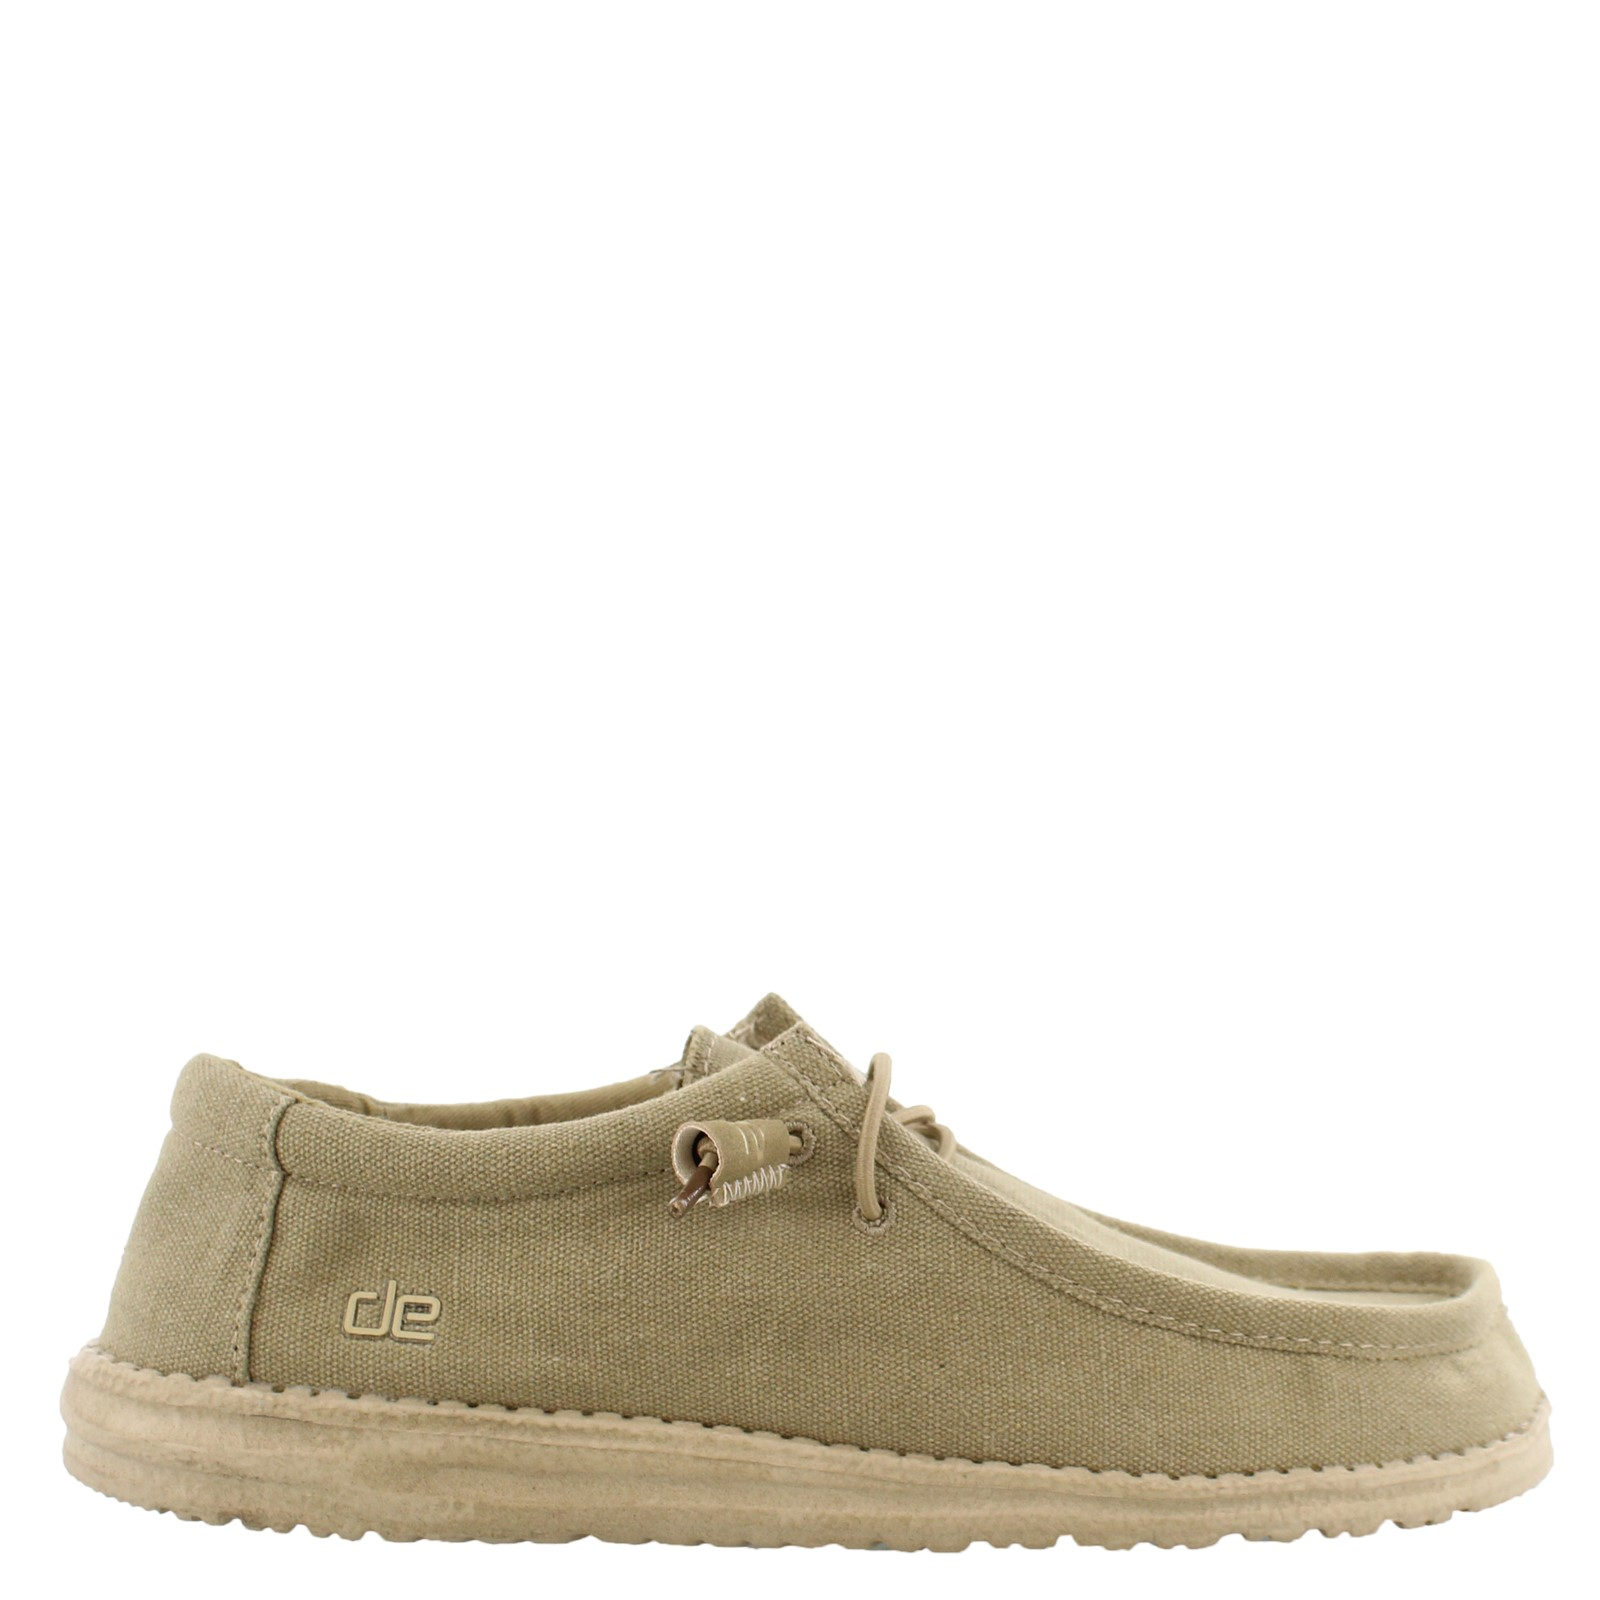 Men's Hey Dude, Wally L Sox Loafer